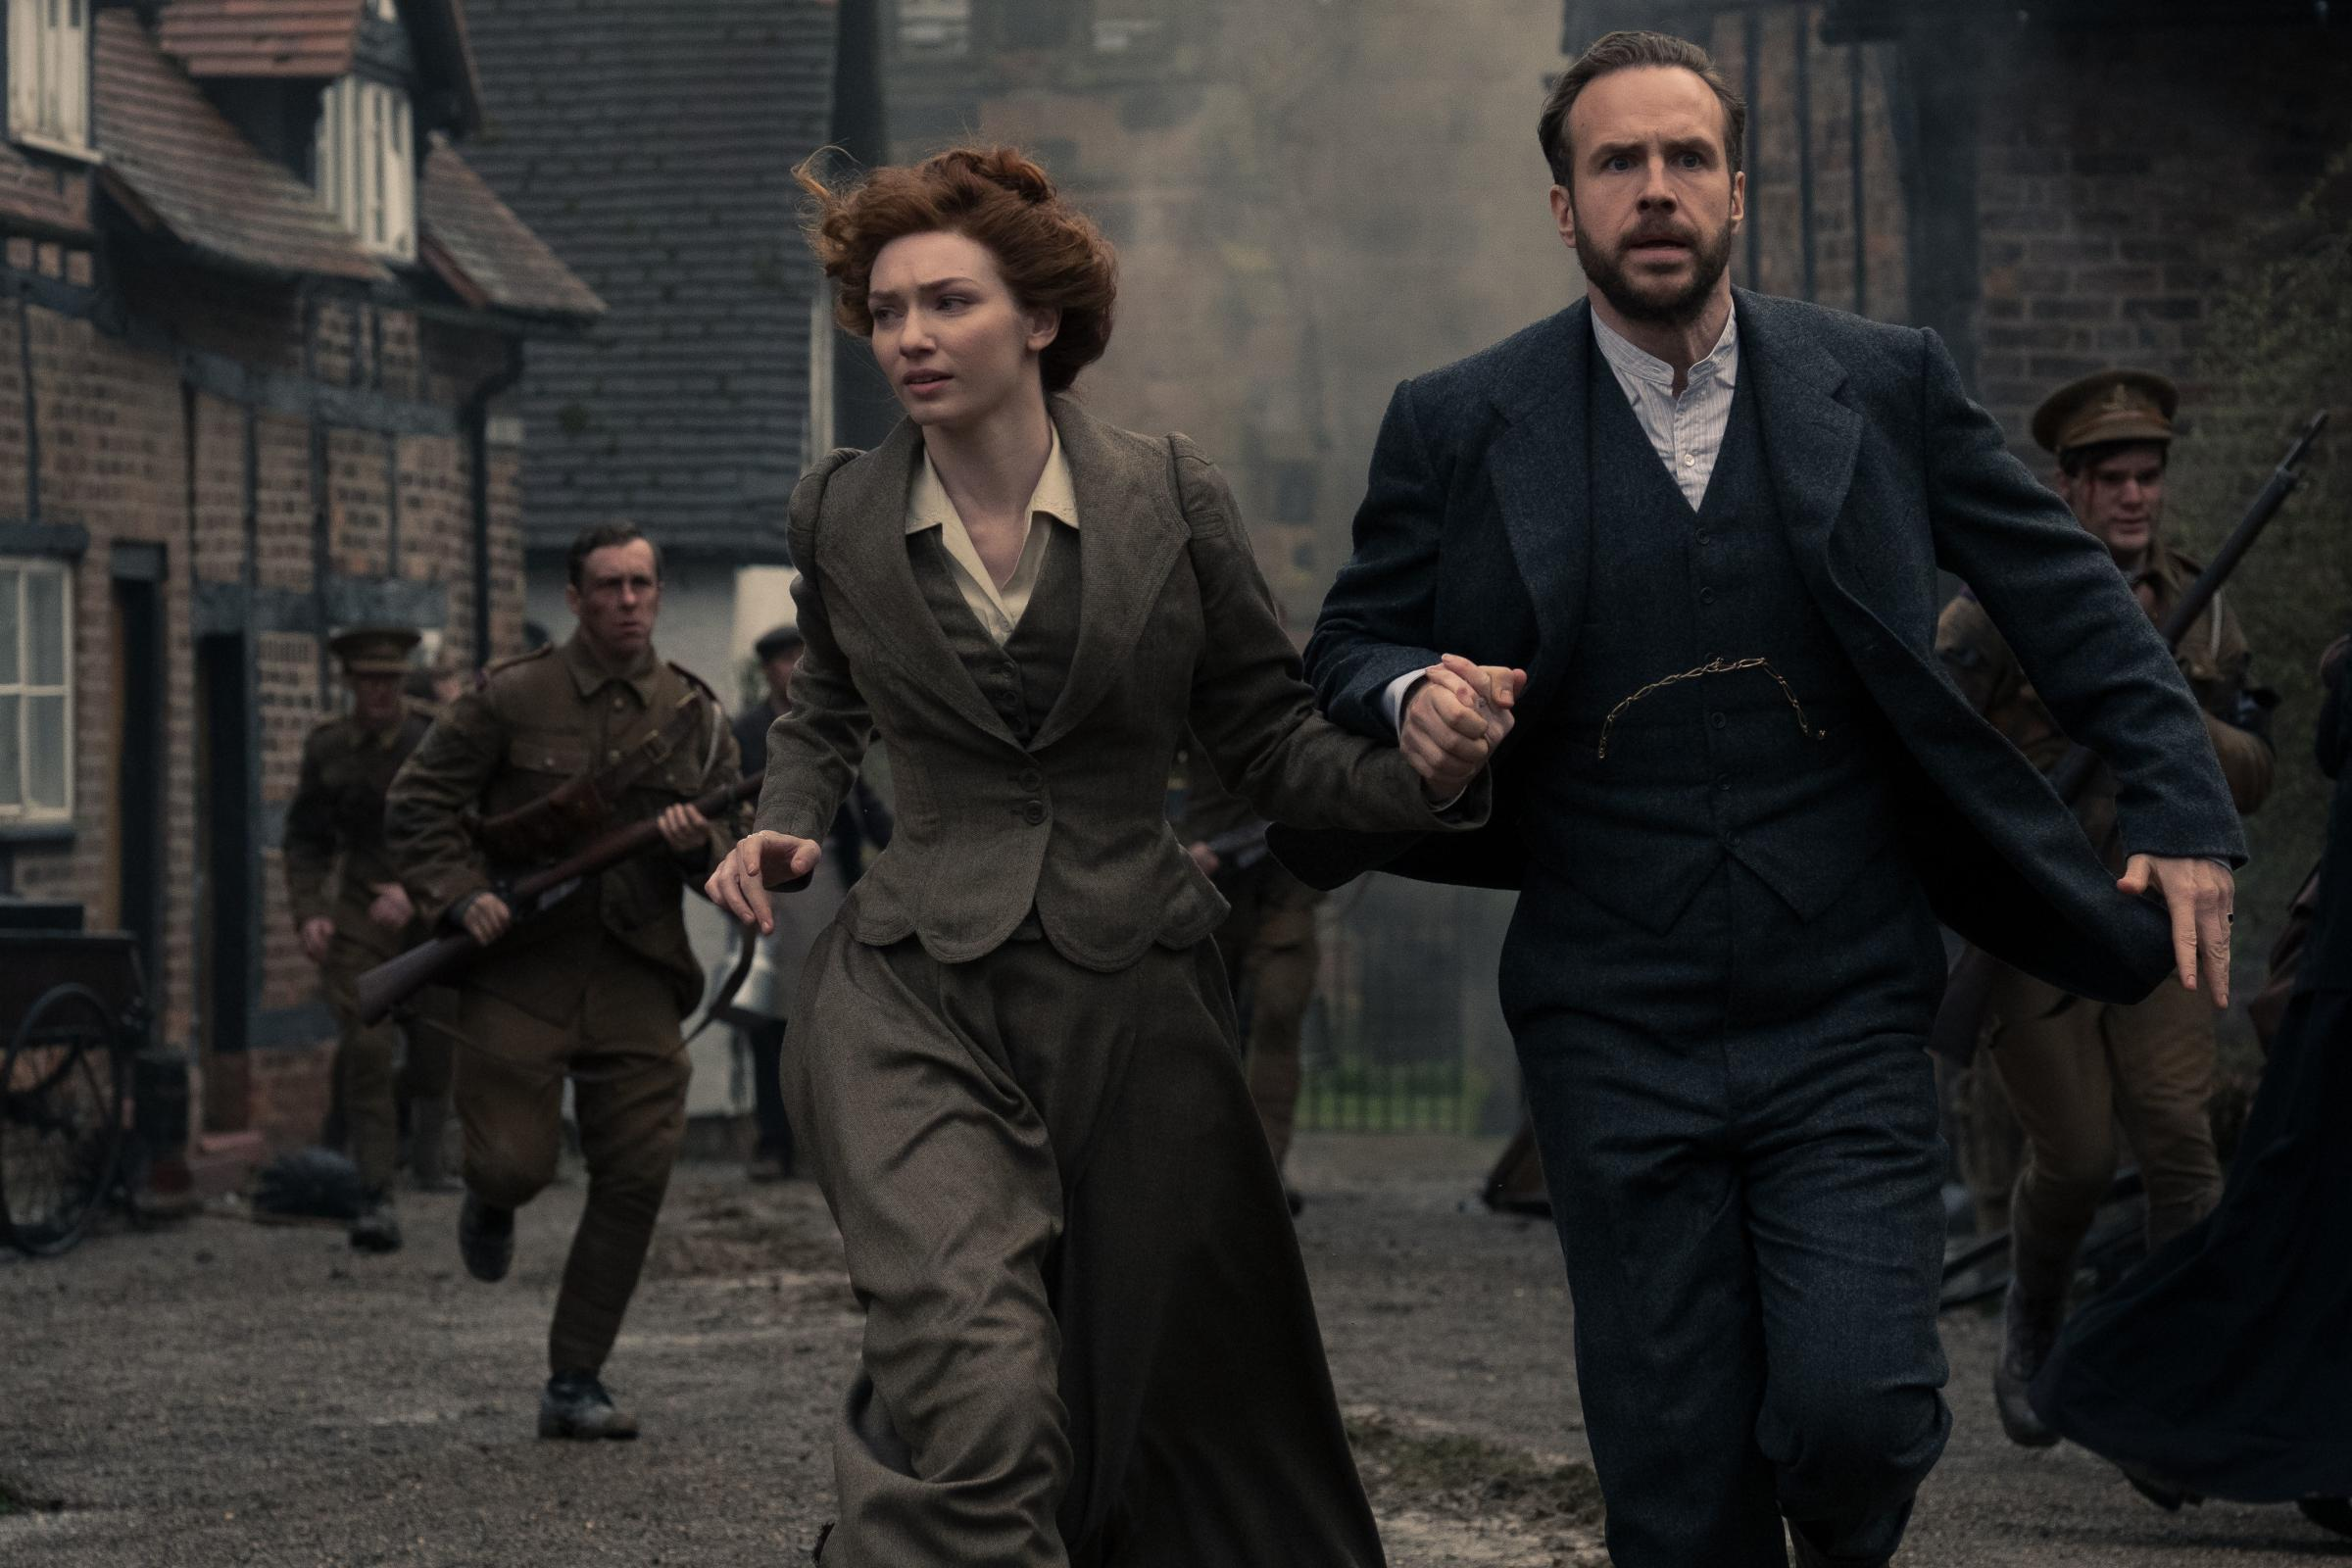 Poldark star to lead new War of the Worlds show